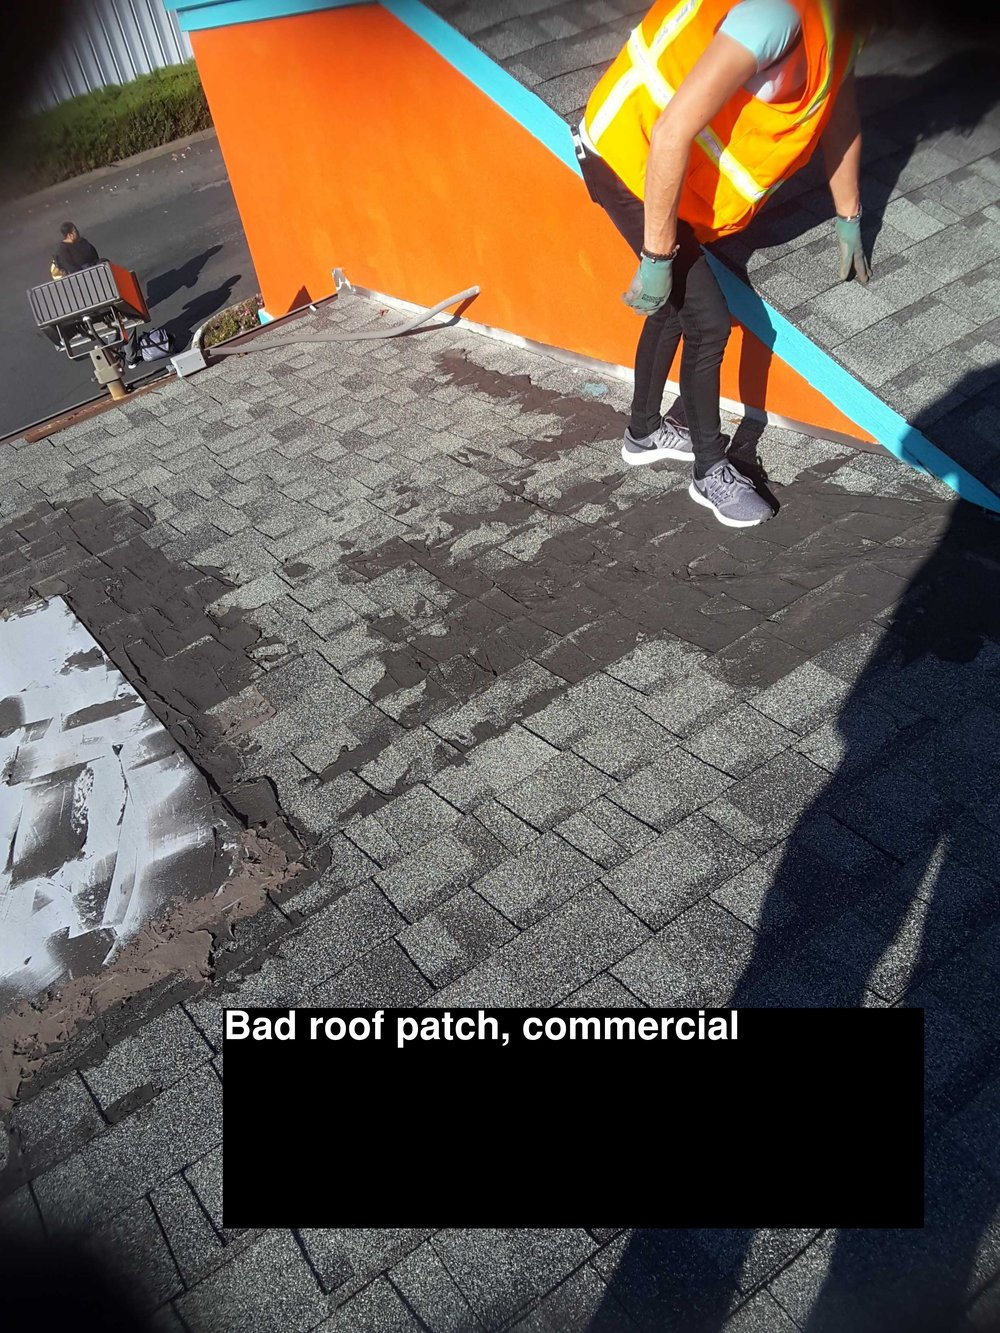 Wife inspecting roof